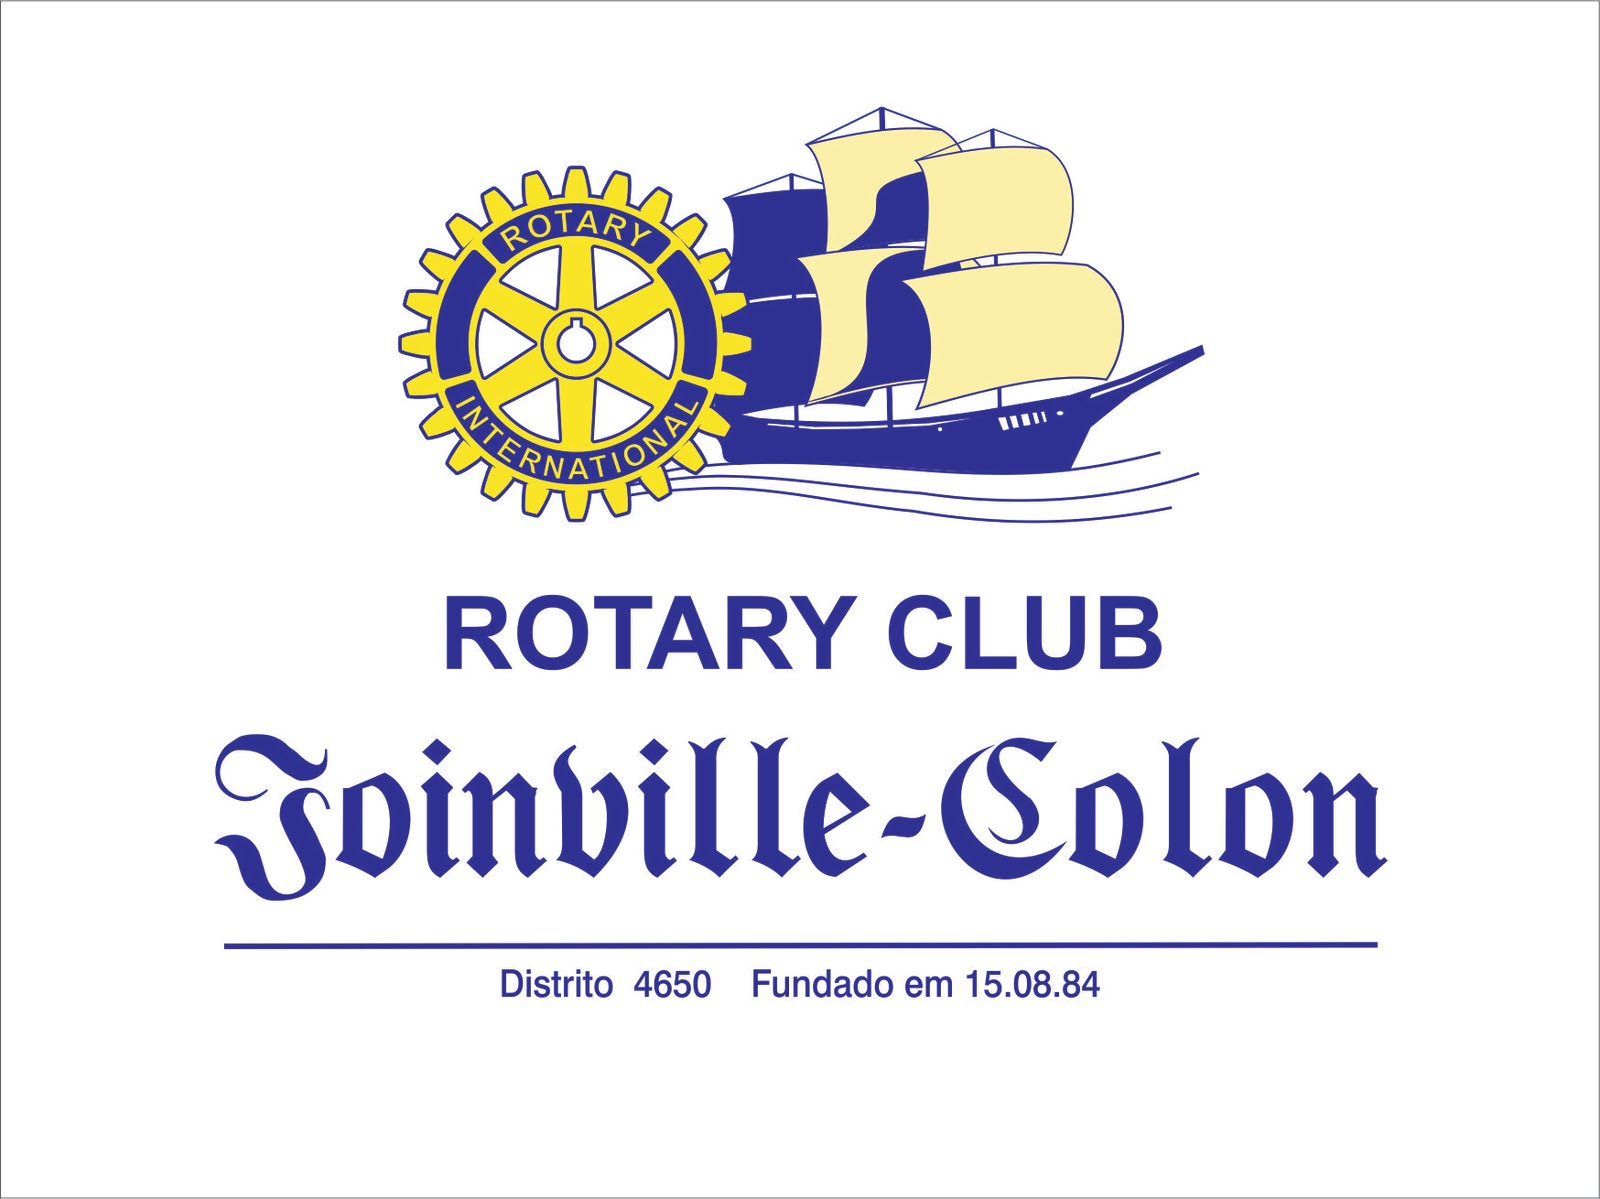 Rotary Club Joinville Colon